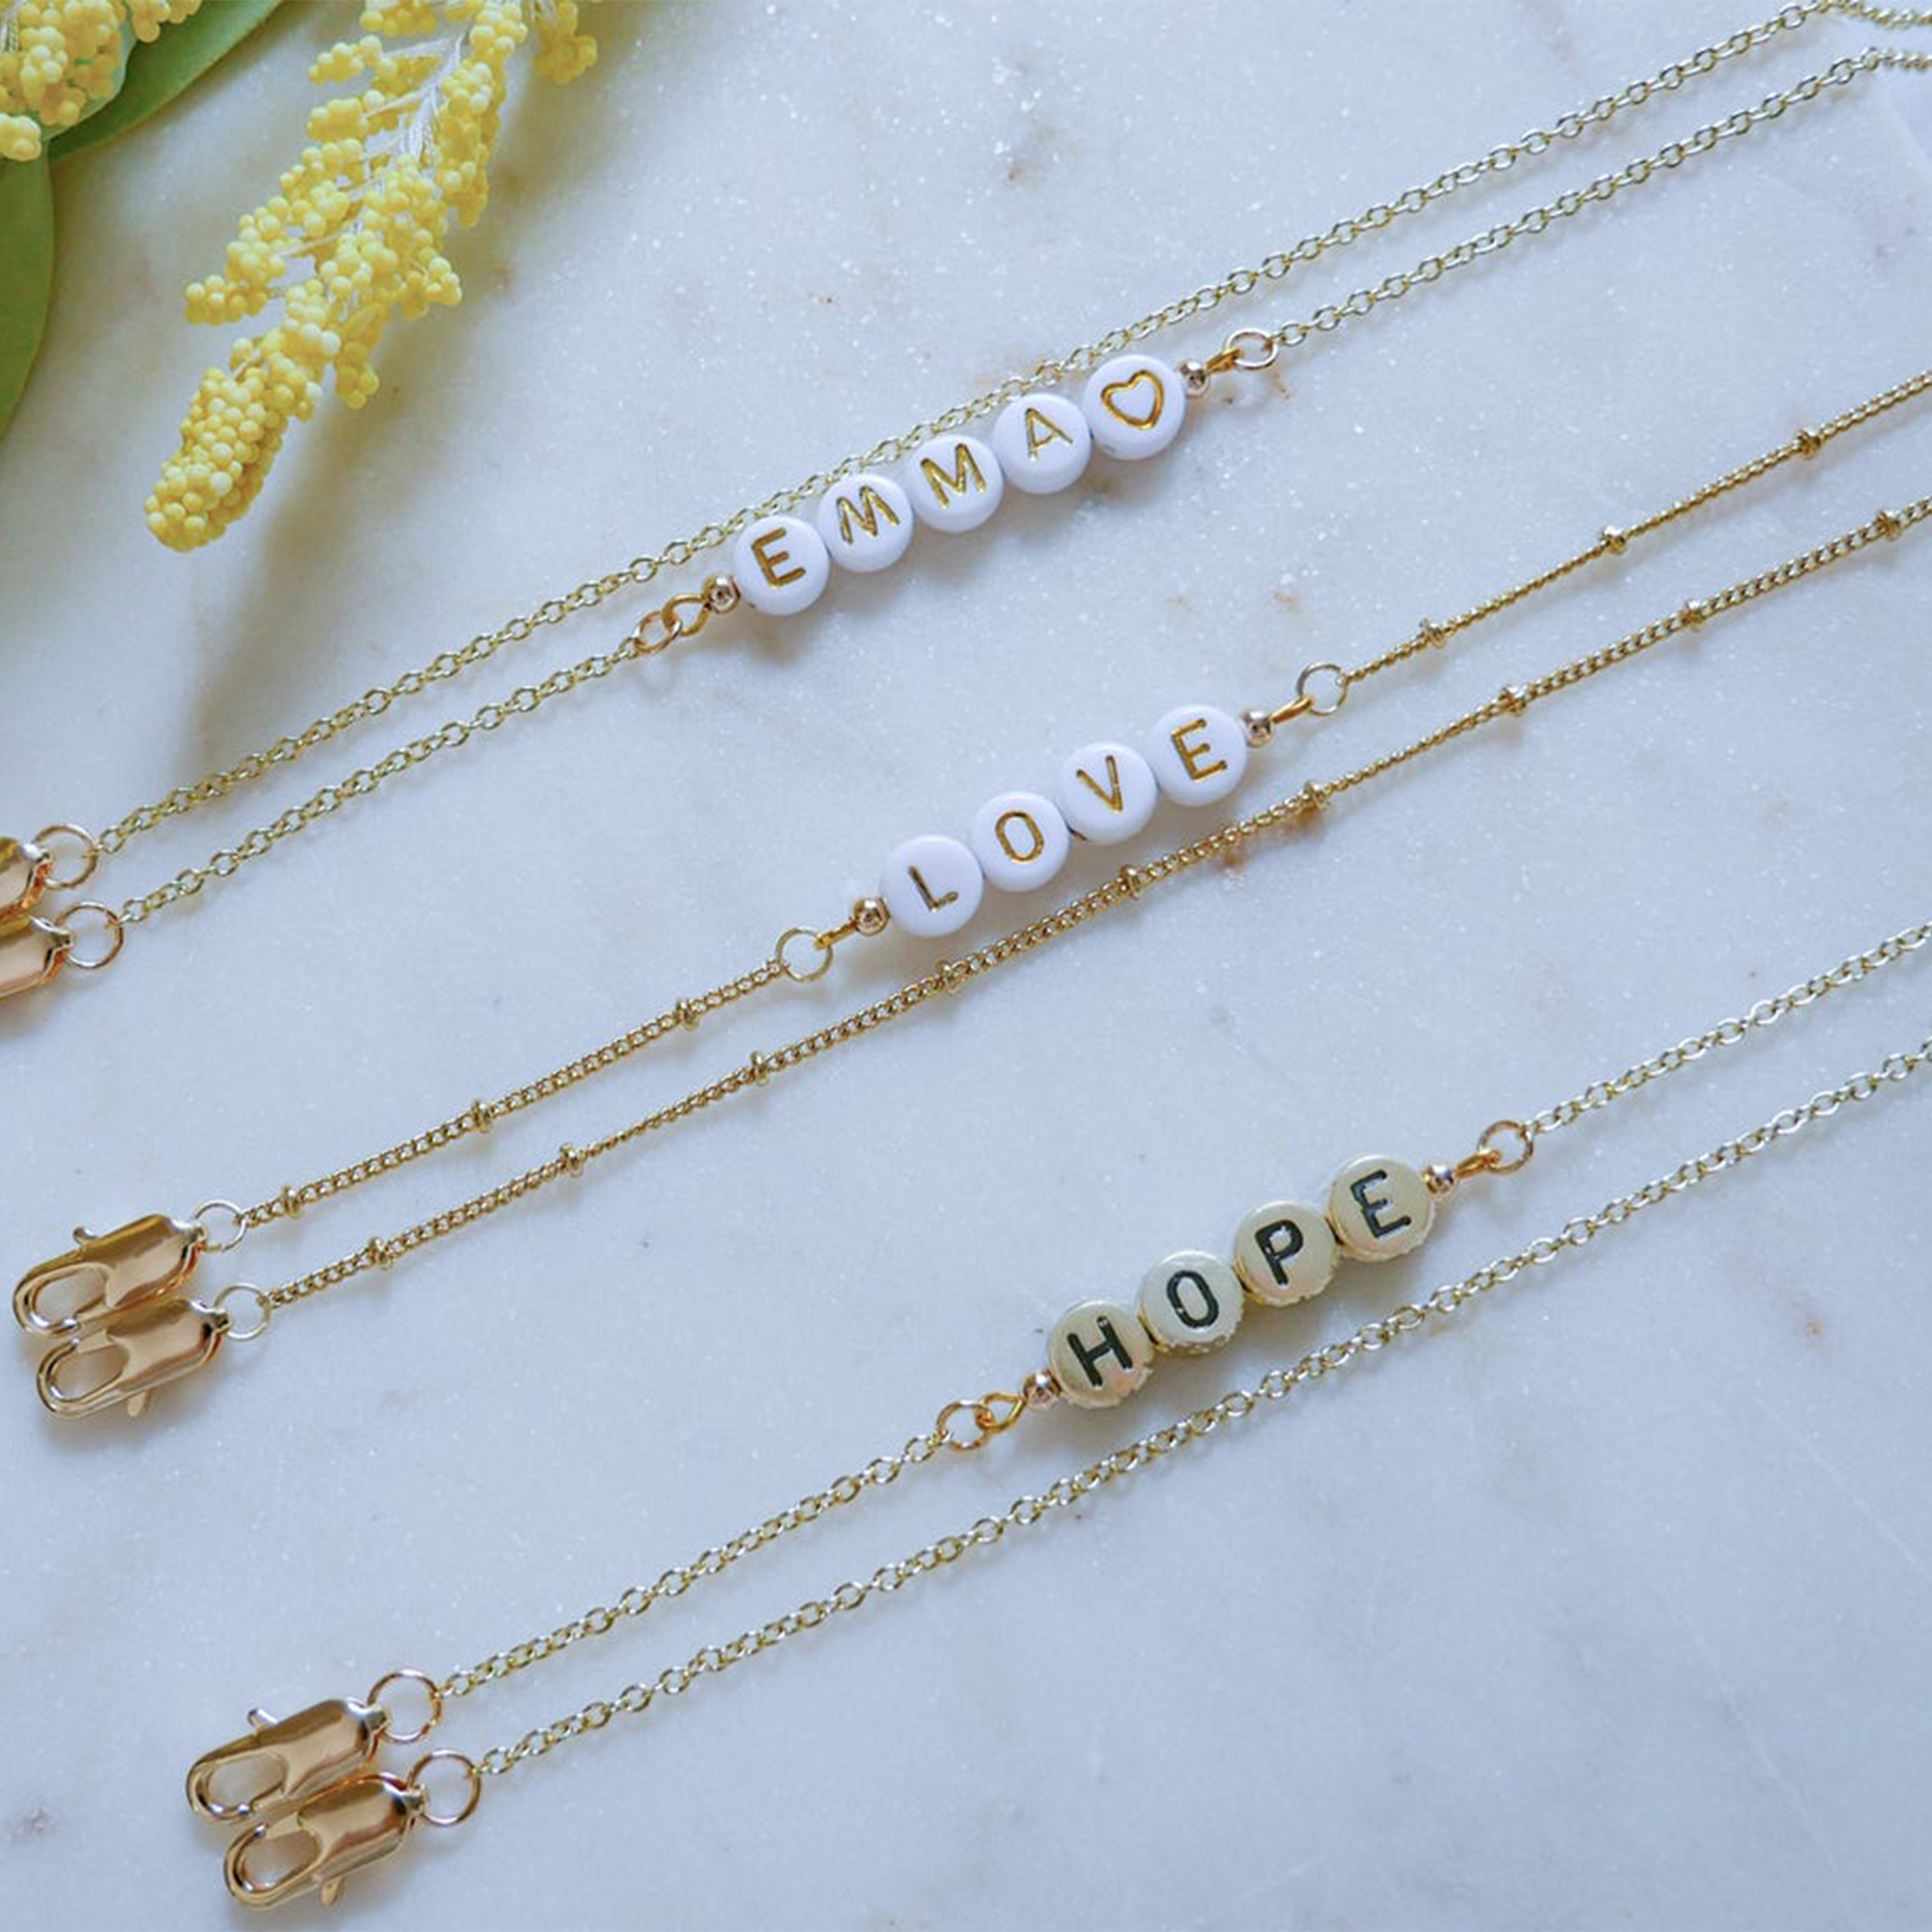 SimpleCheers - Gold & Silver Personalized Facemask Lanyard, Face Mask Chain with Name.